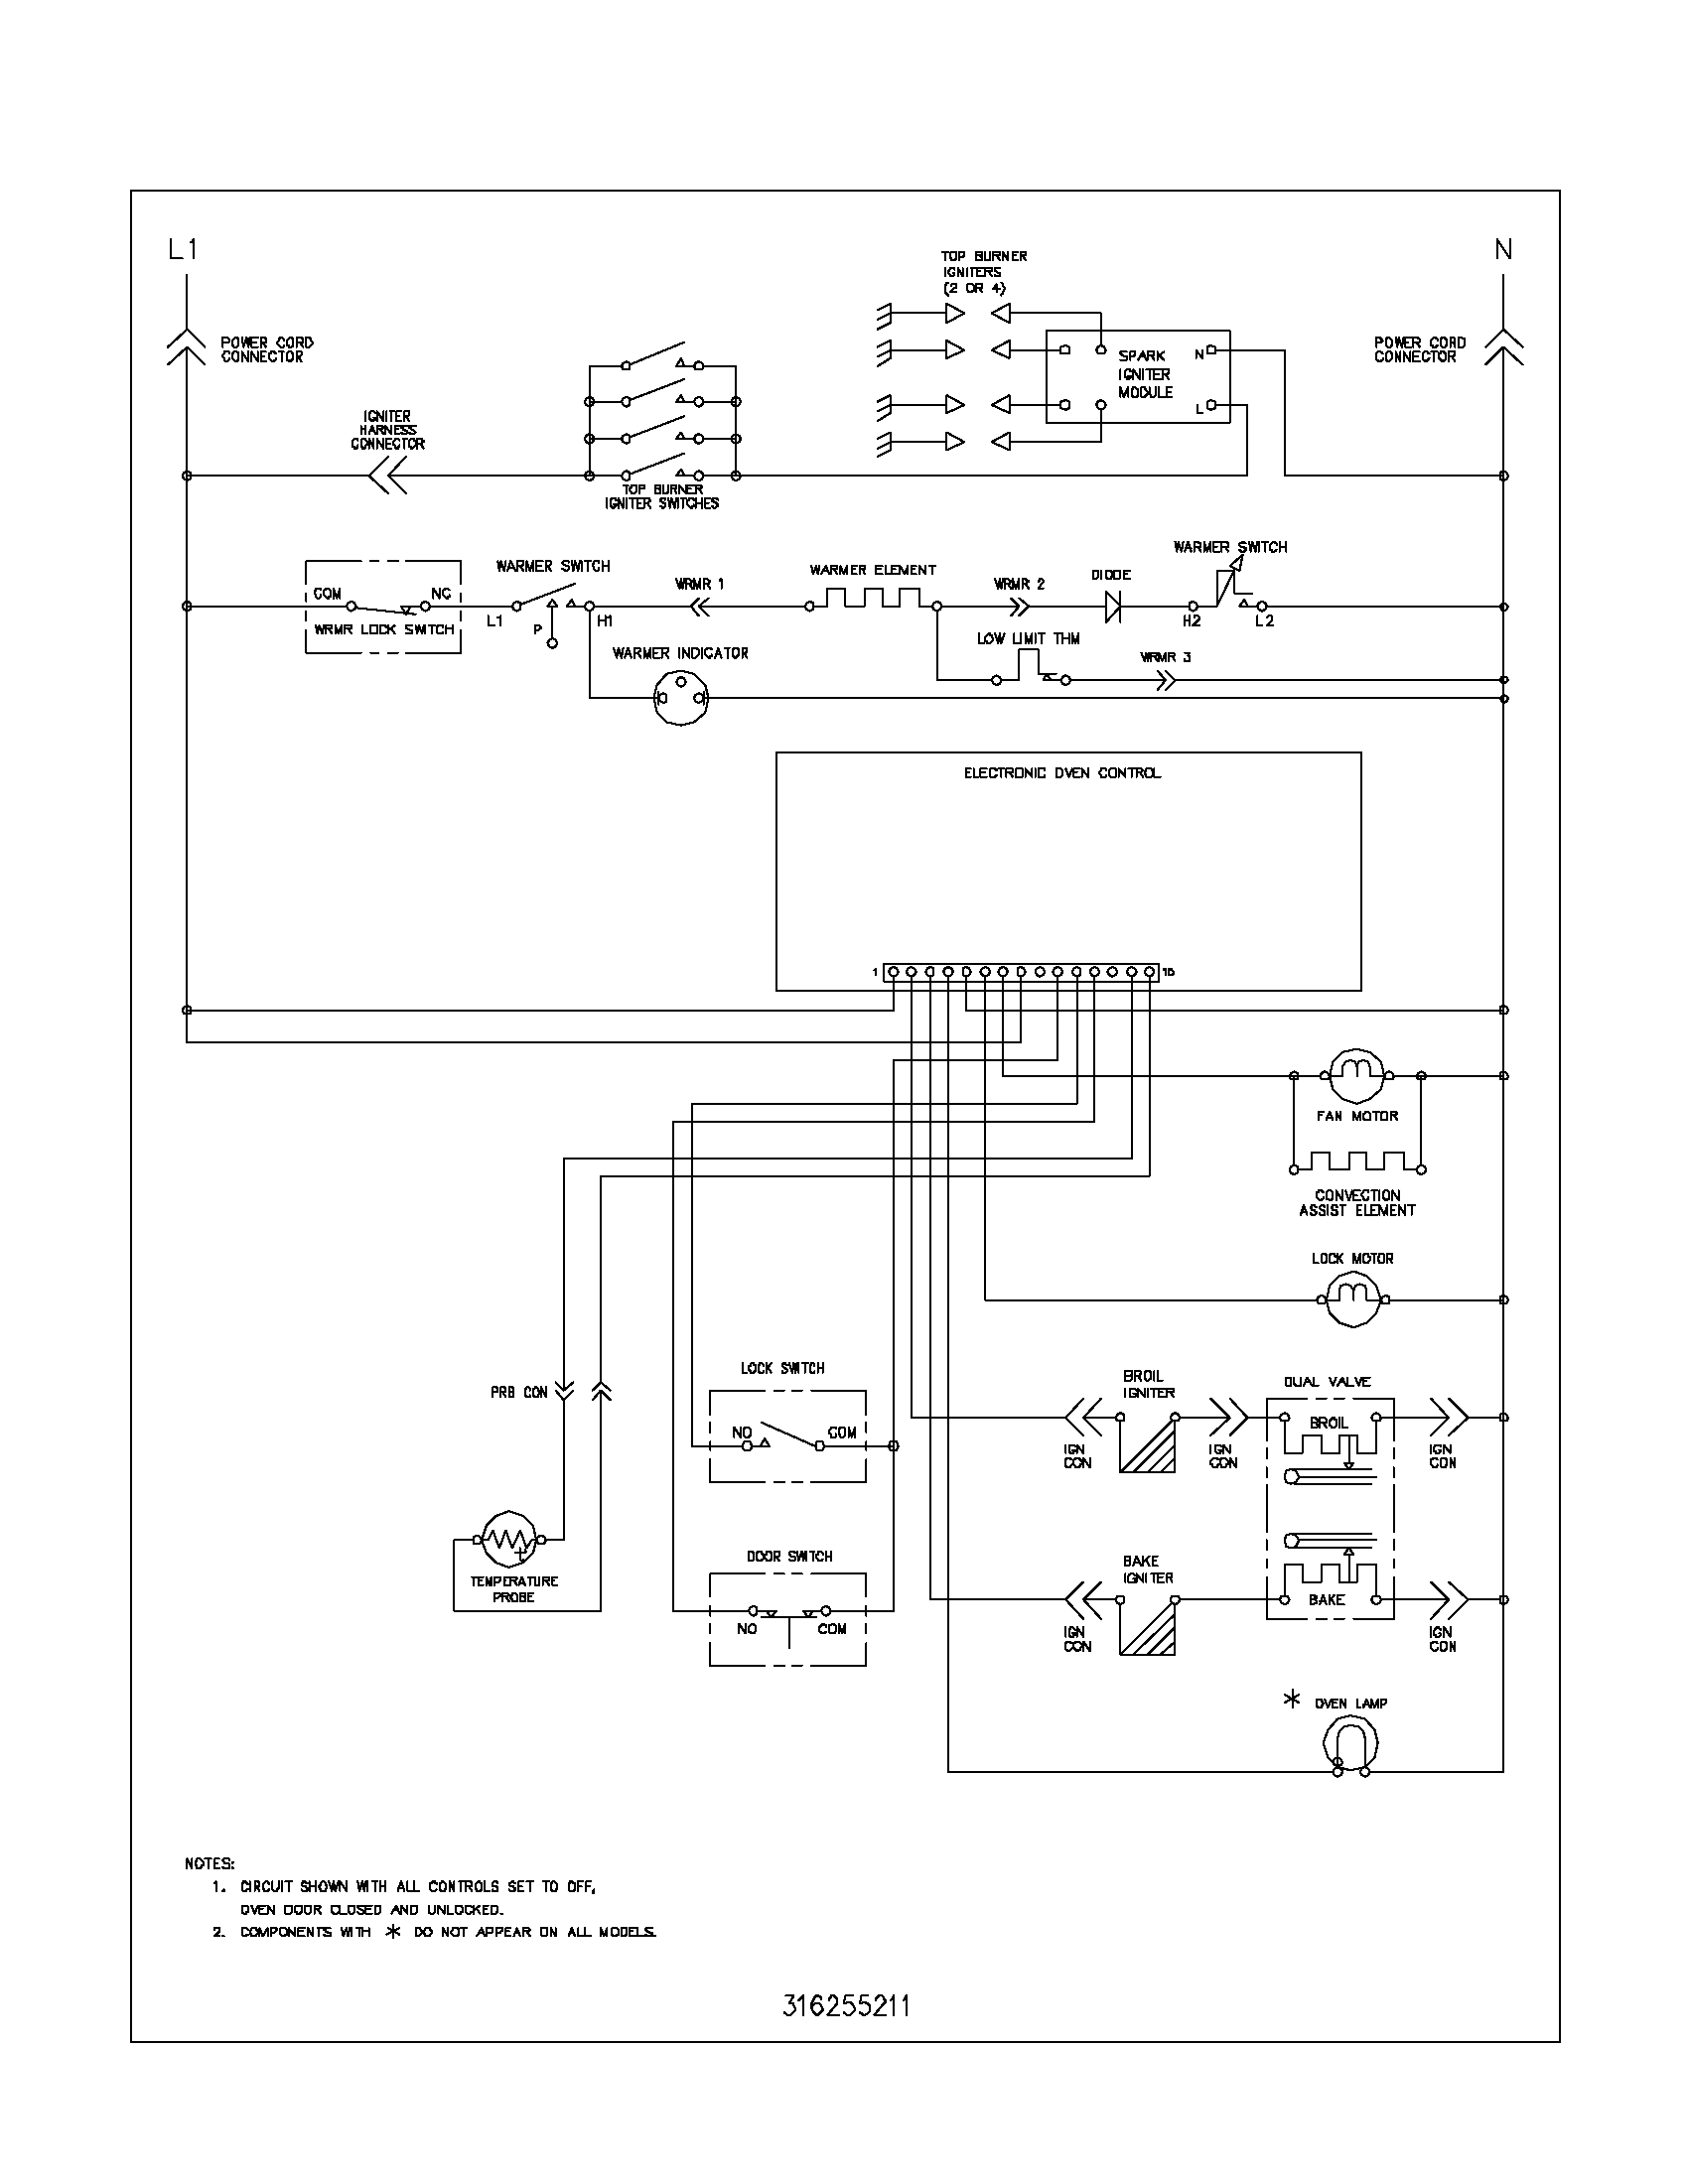 diagram refrigerator wiring whirlpool et4wskyk00 for diagram range wiring whirlpool gs445lems4 frigidaire plgf389ccb gas range timer - stove clocks and ... #6